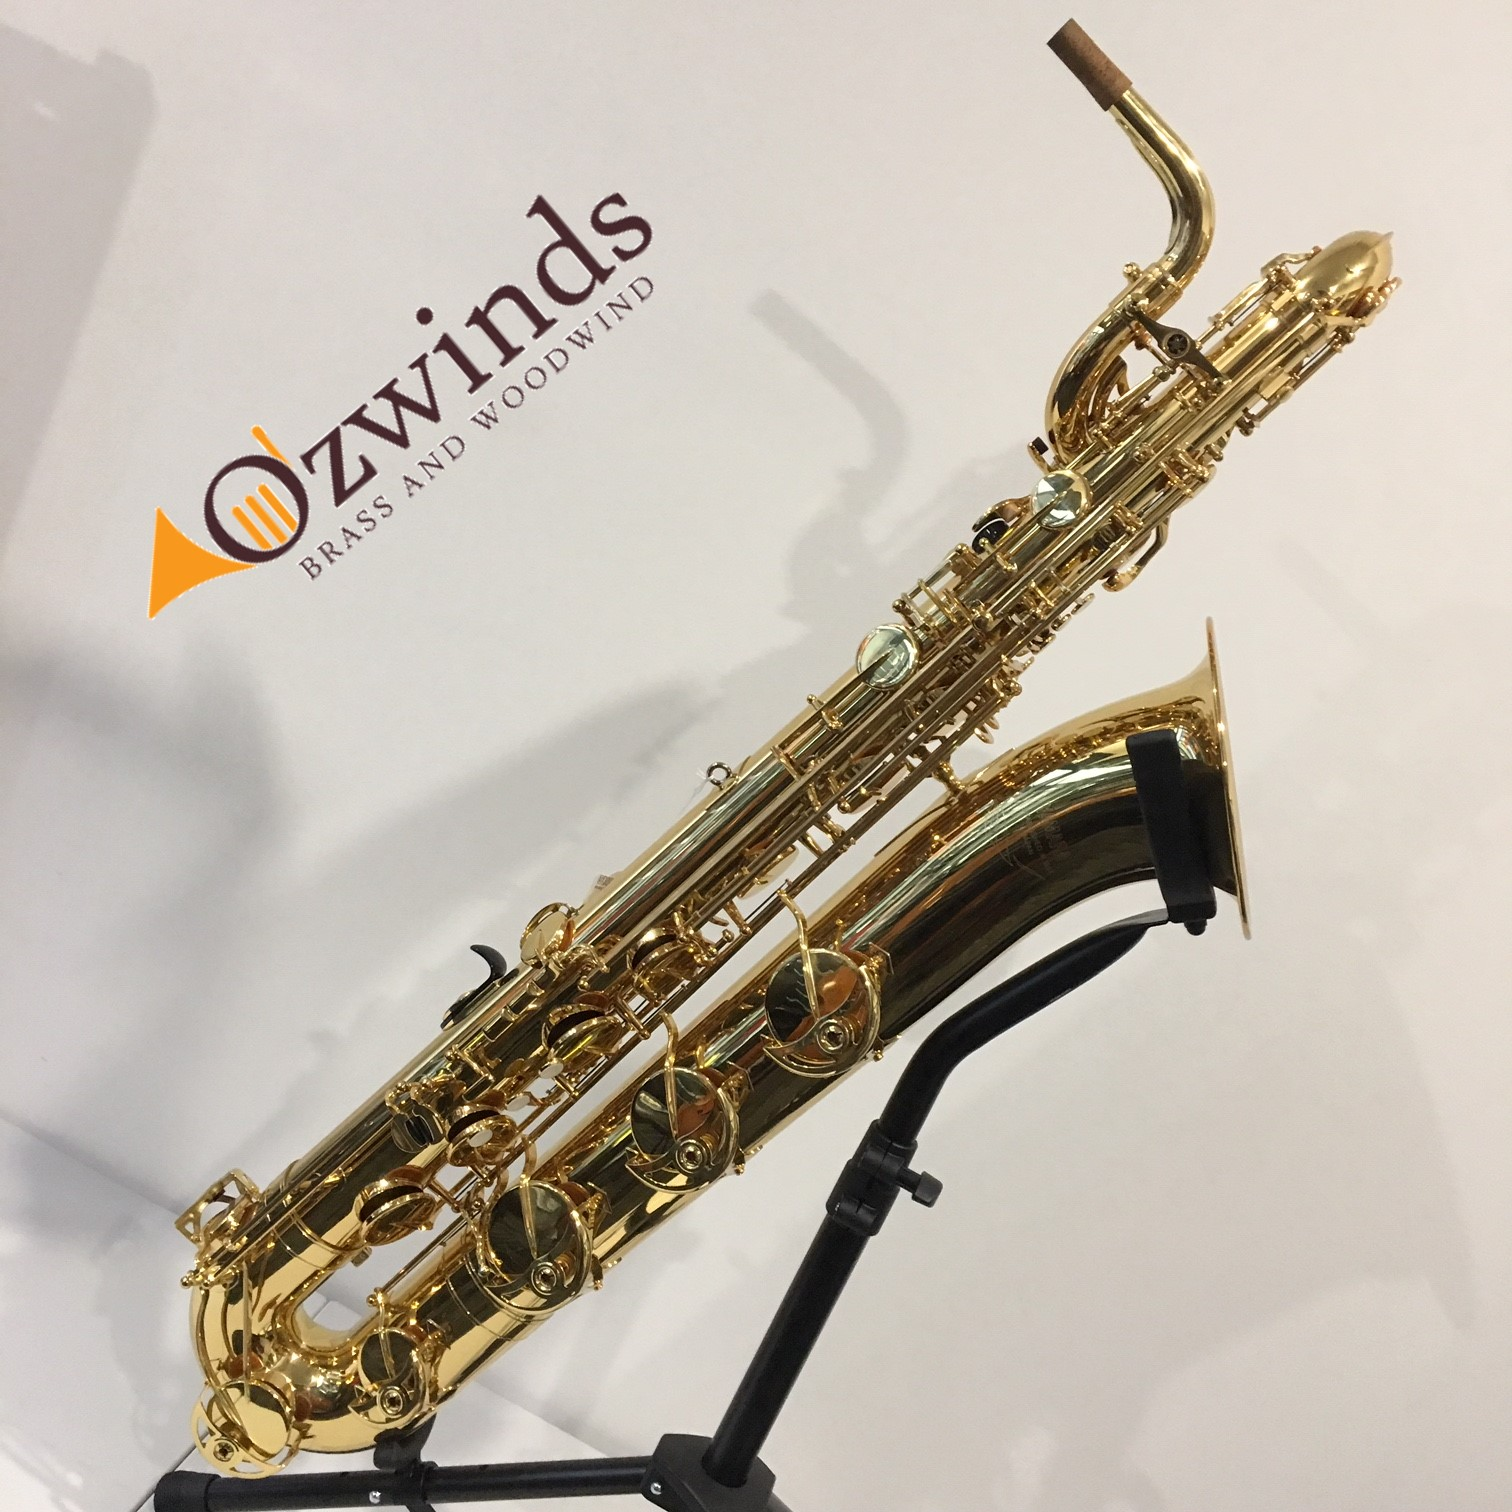 Yamaha YBS-32 Baritone Sax Near-New (NOW SOLD)